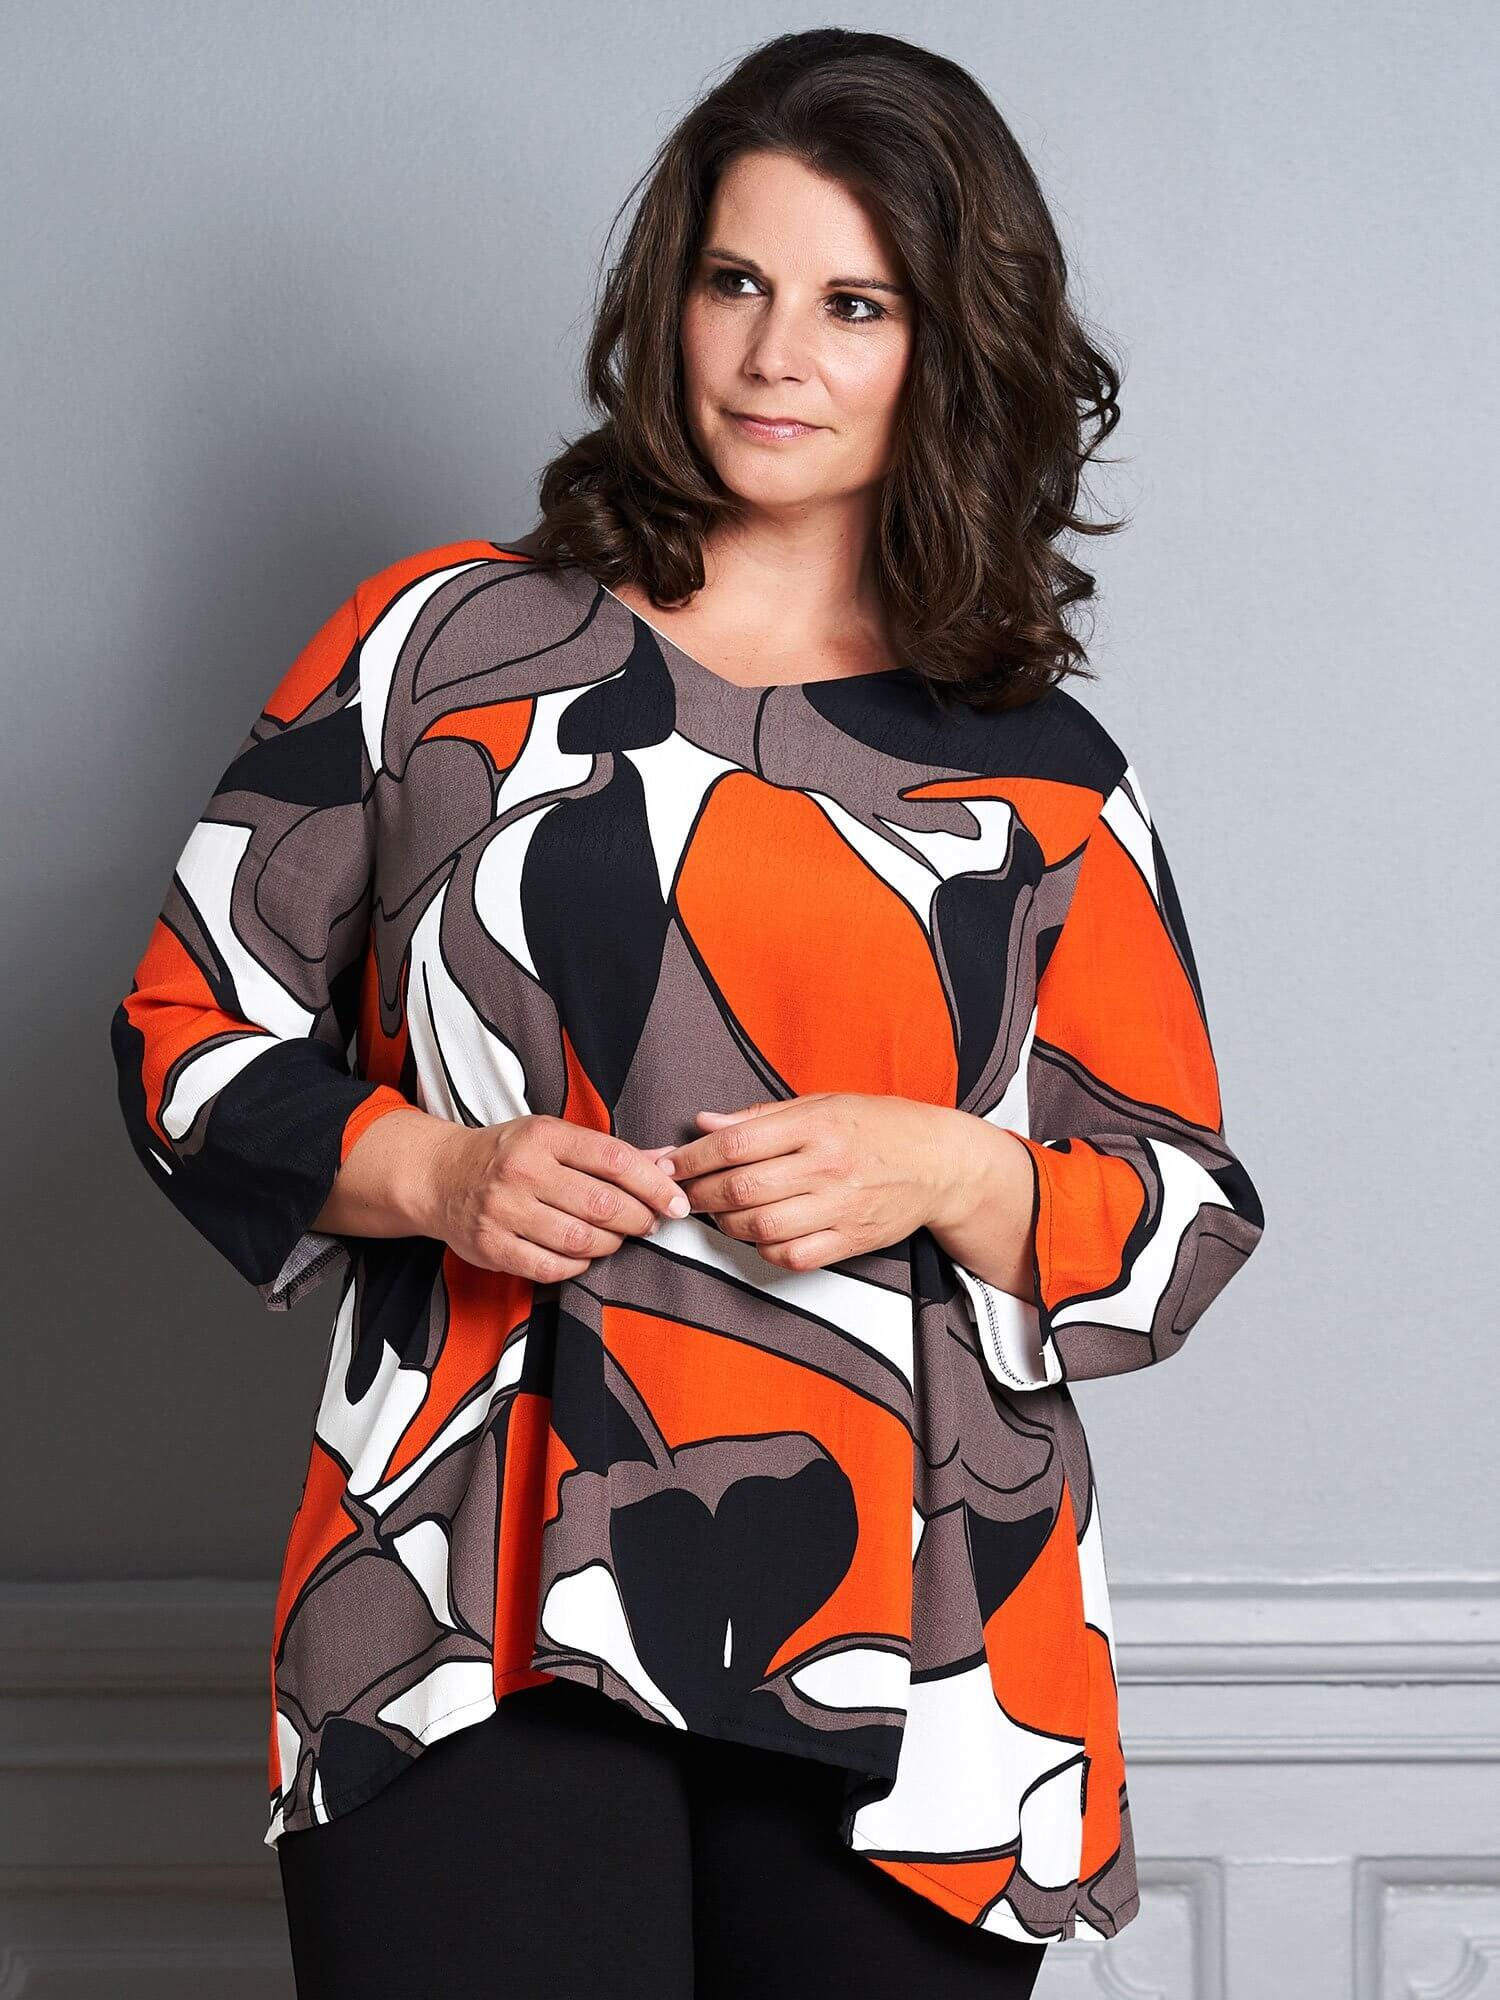 Let Gry bluse med grafisk print i sort, brun og orange